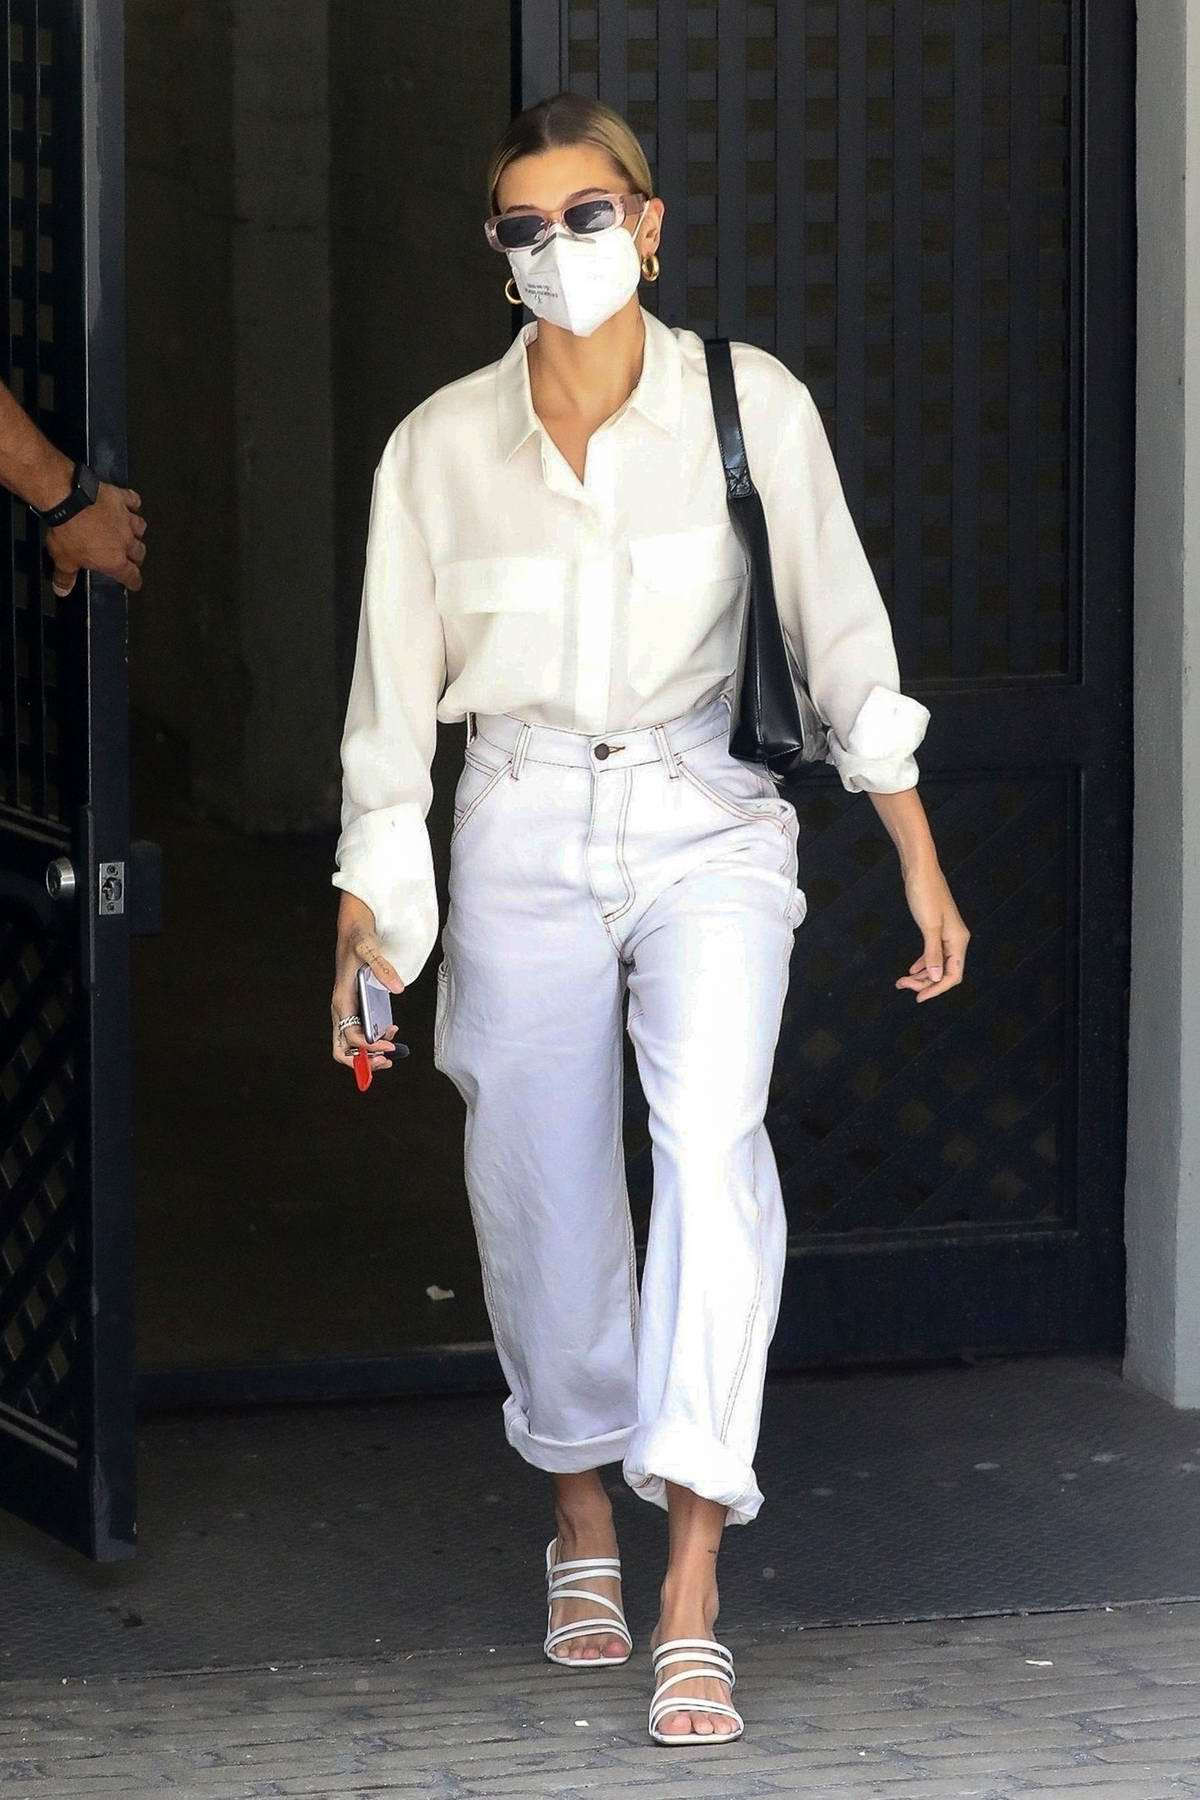 Hailey Bieber dons all-white for a business meeting in Los Angeles